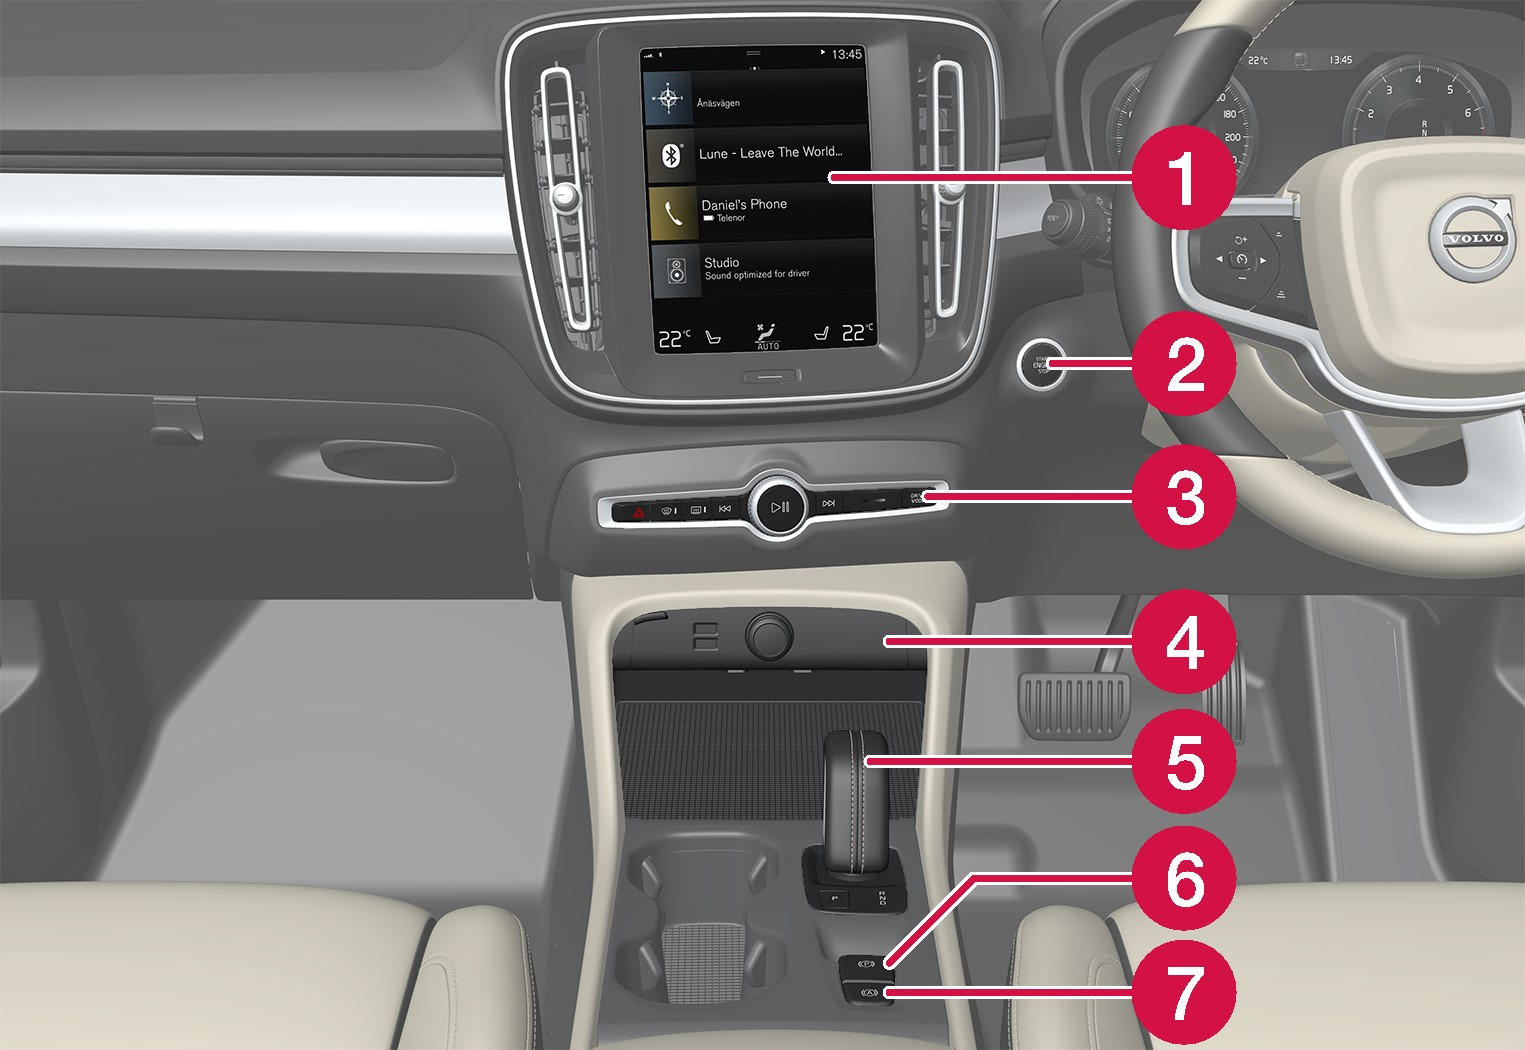 P6-1746-XC40-Controls in tunnel and center console RHD